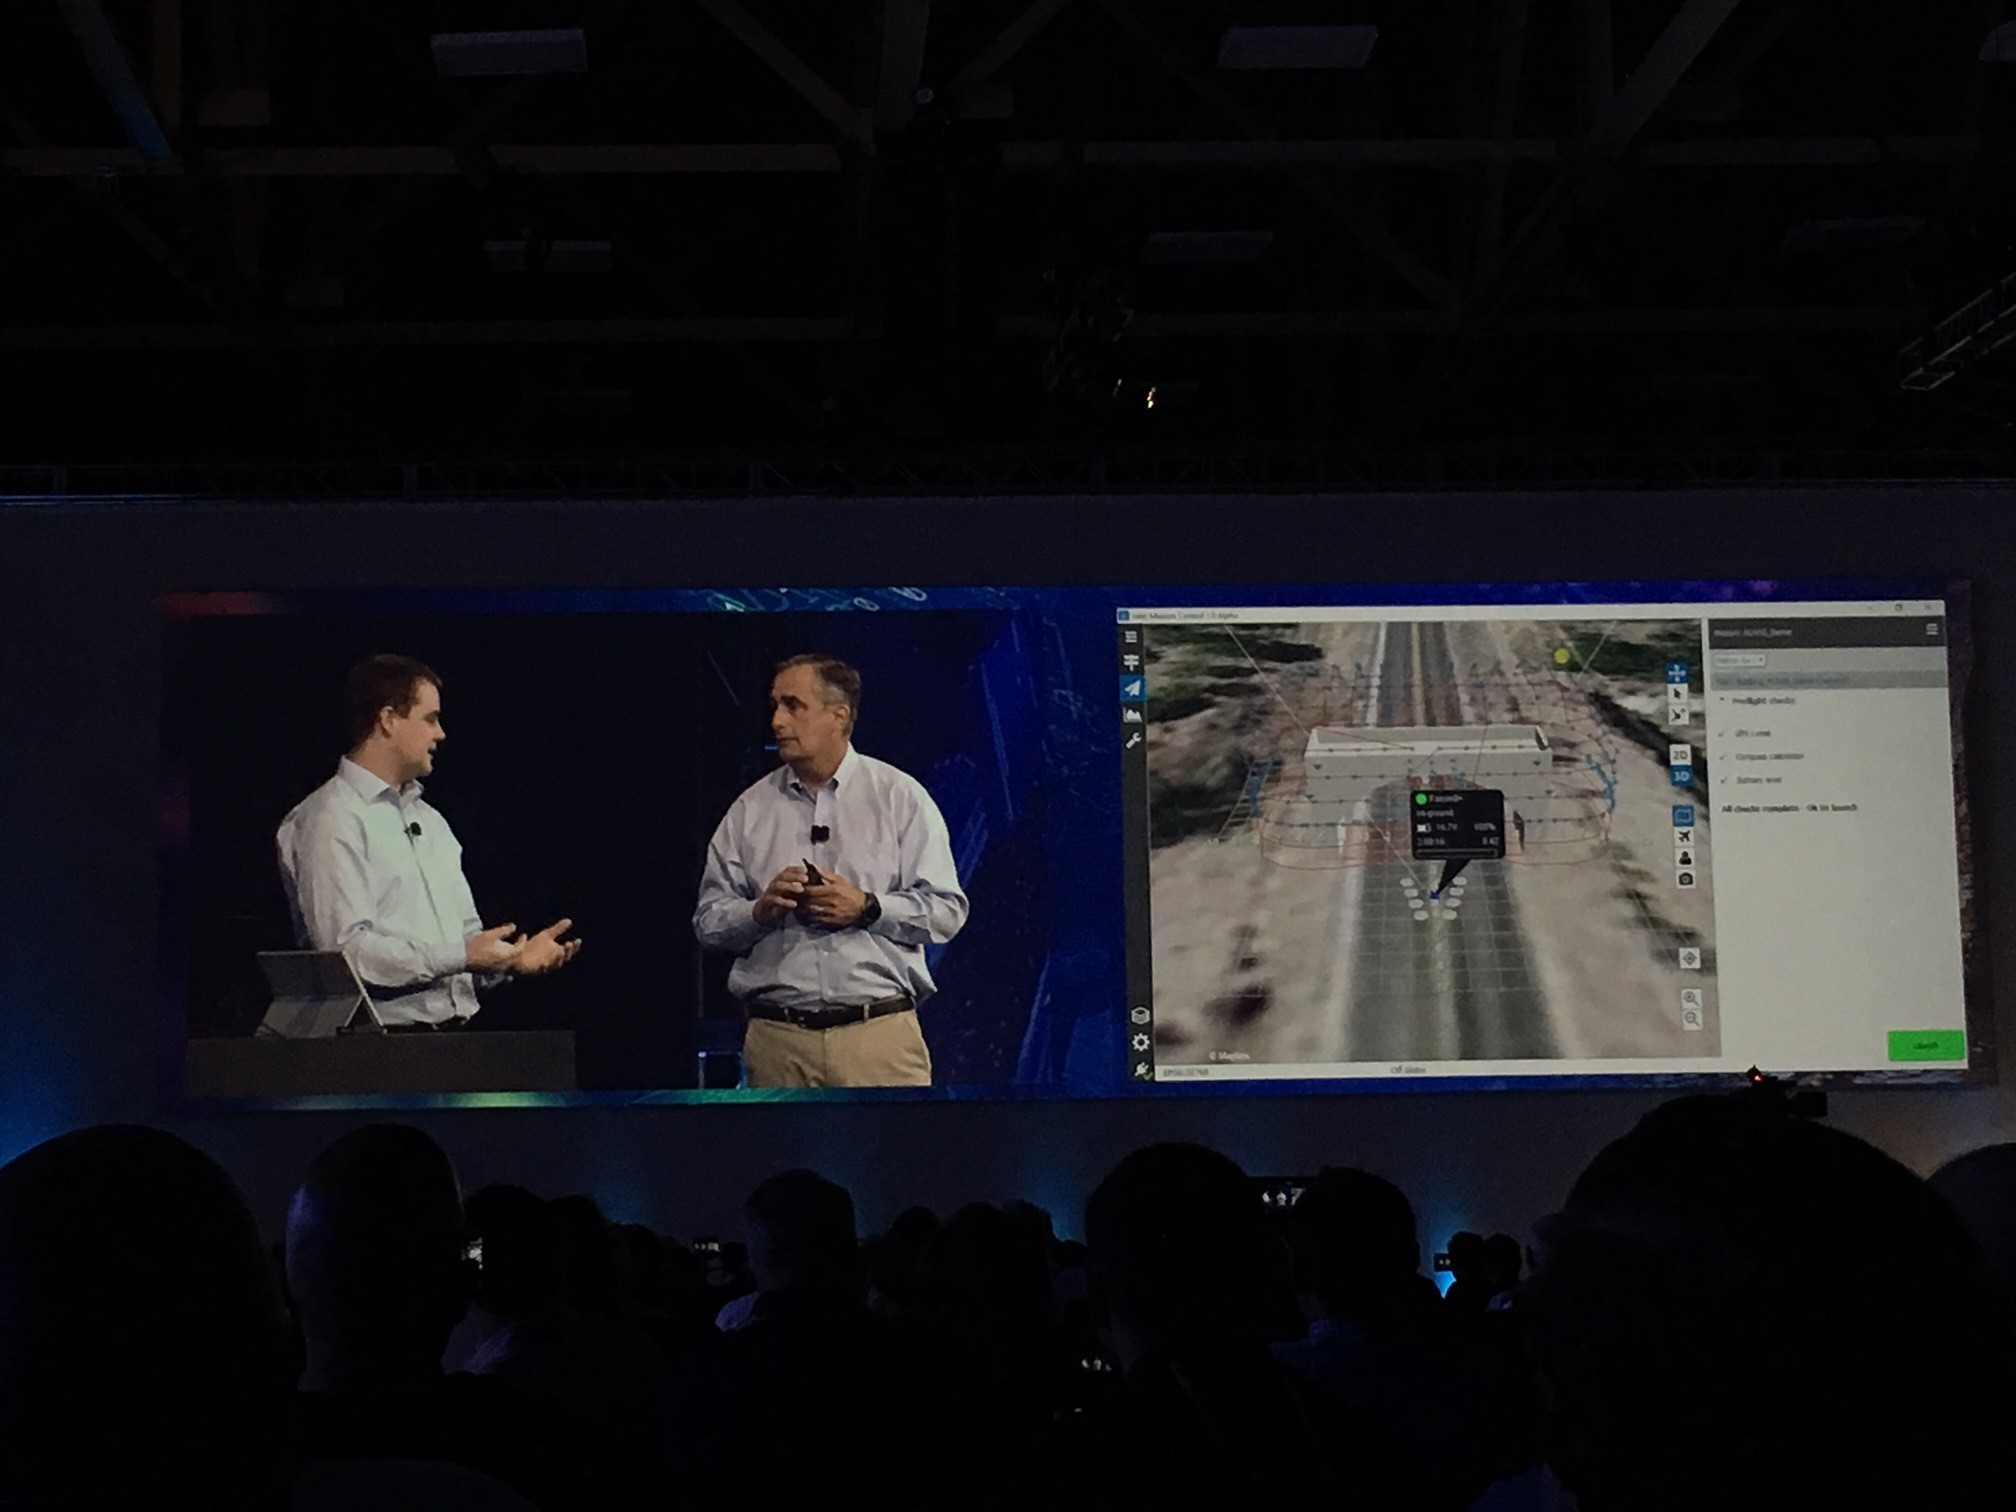 Intel CEO, Brian Krzanich (right) and Mission Control interface to plan Intel Falcon 8+ flight route and inspection image capturing